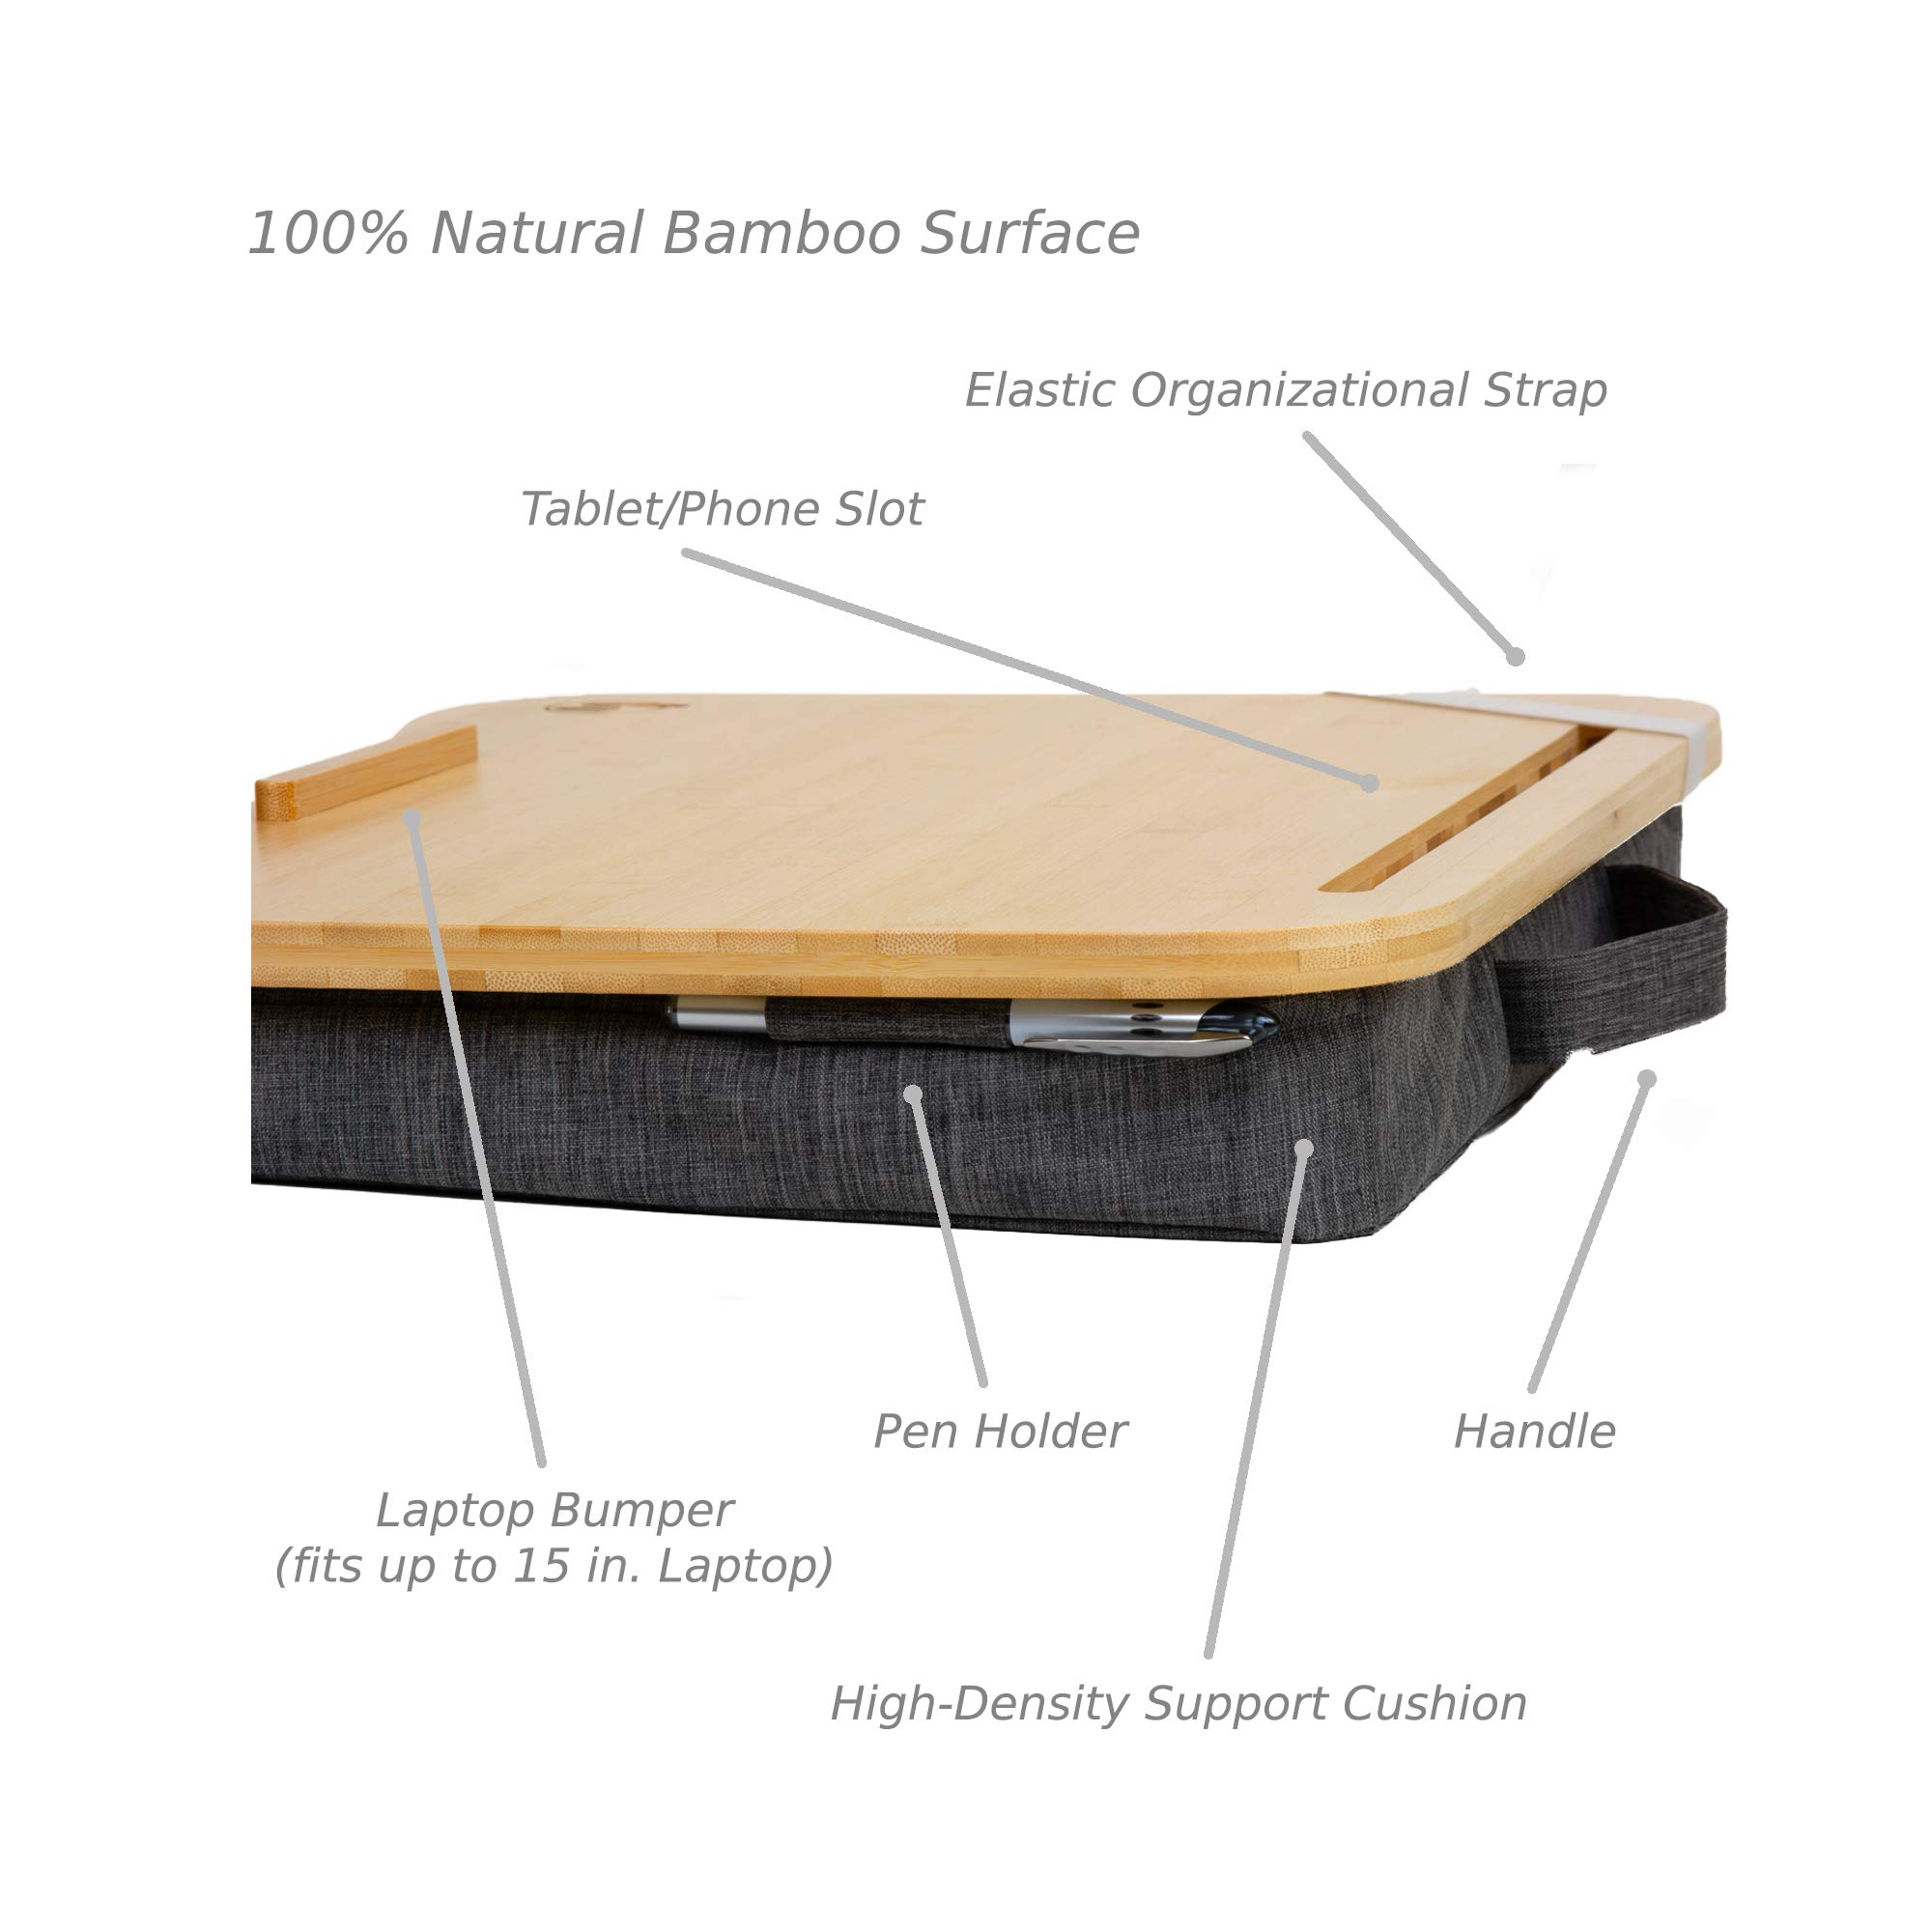 Lap Desk by Hultzzzy - Large 100% Natural Bamboo Surface - Fits up to 17 Inch Laptops - 15'' Tablets - Pen & Phone Holder - Mouse Pad Accessible - Cushion Foundation by Hultzzzy (Image #4)